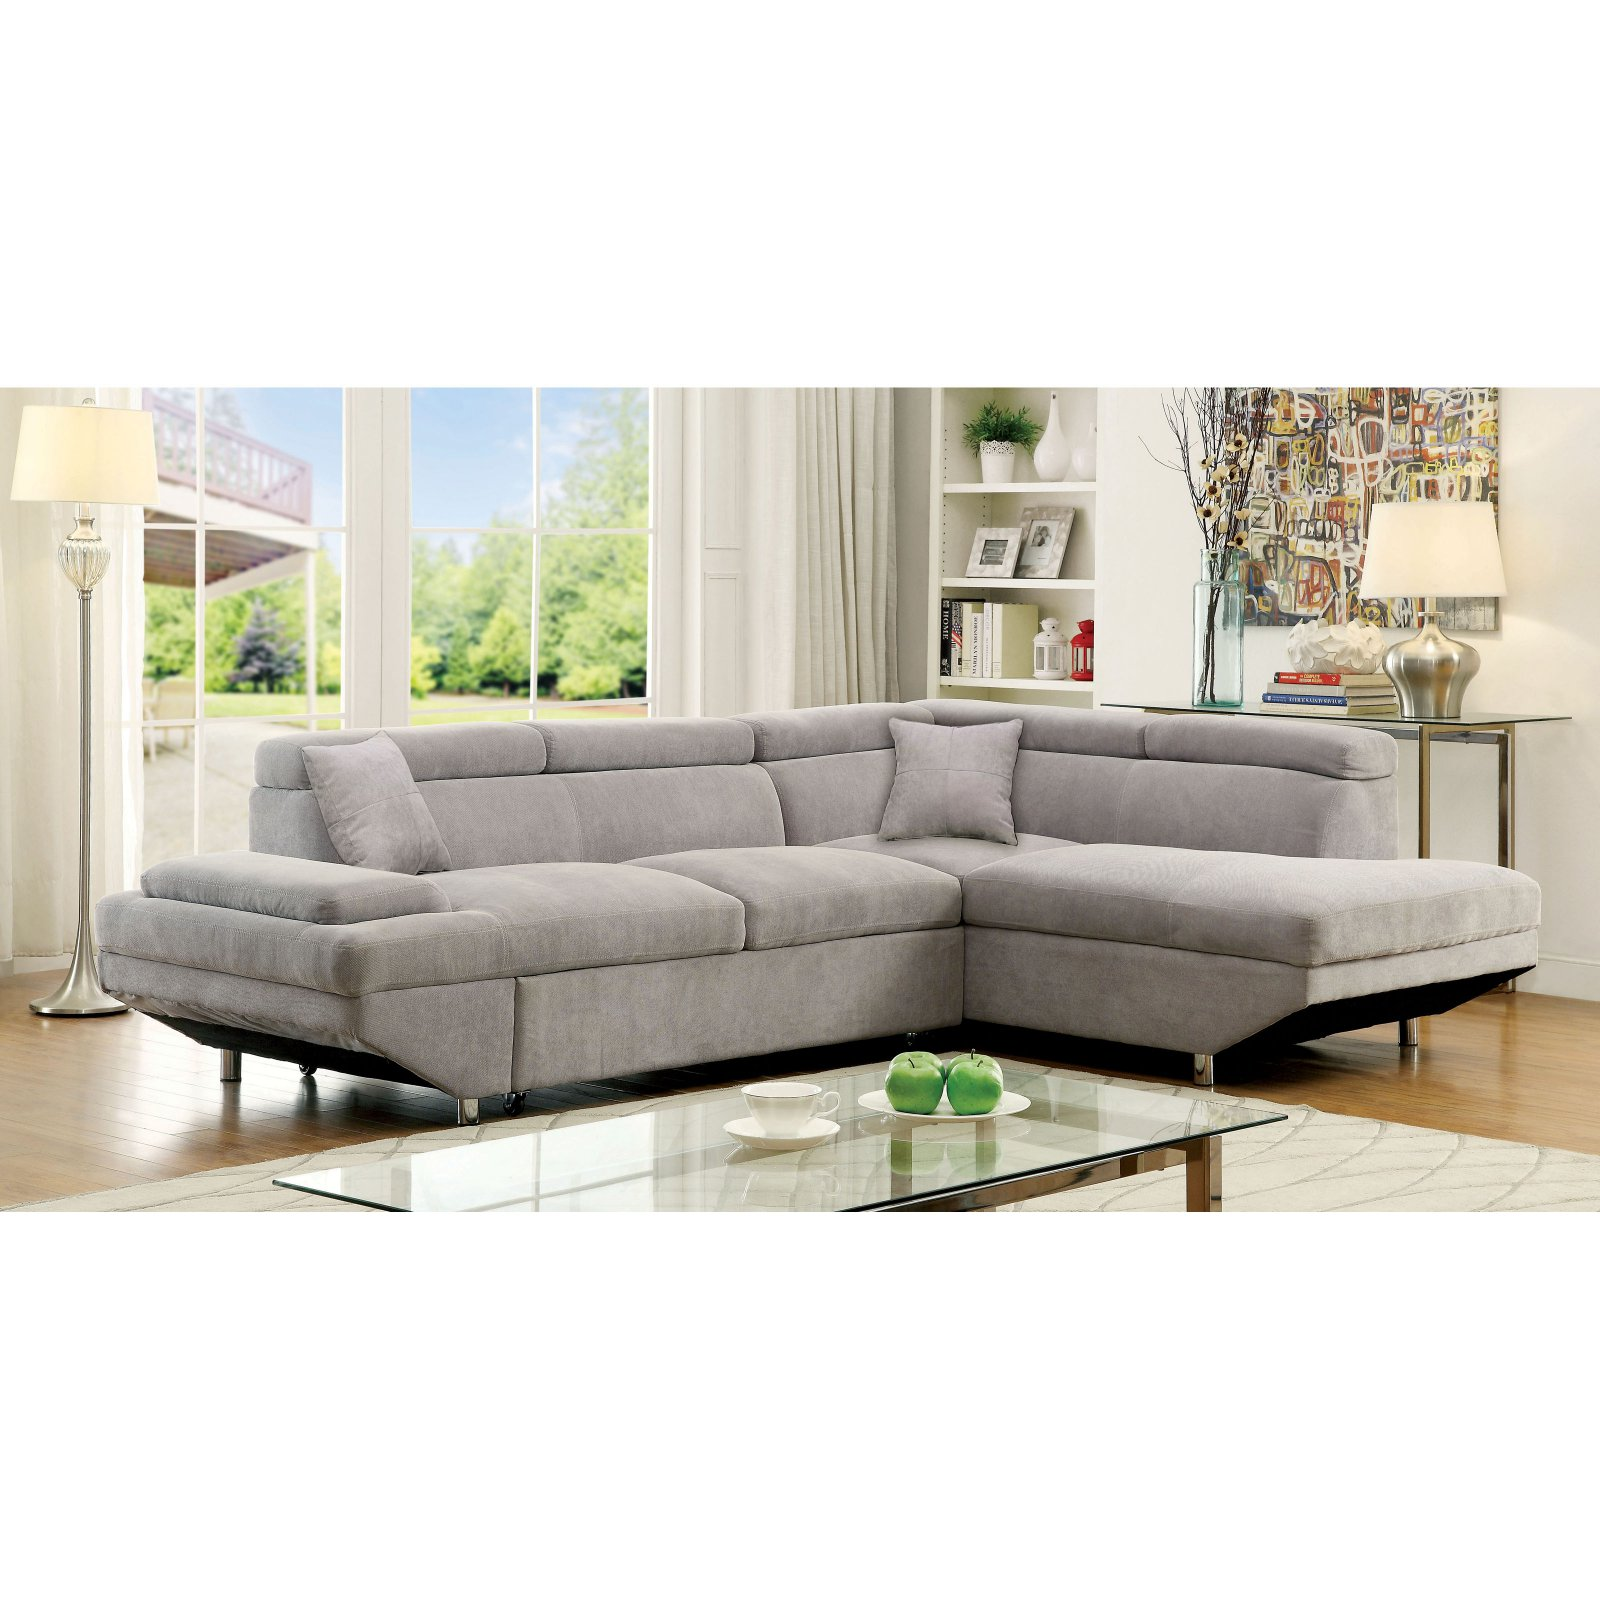 Furniture of America Dorian Sectional Sofa with Chaise